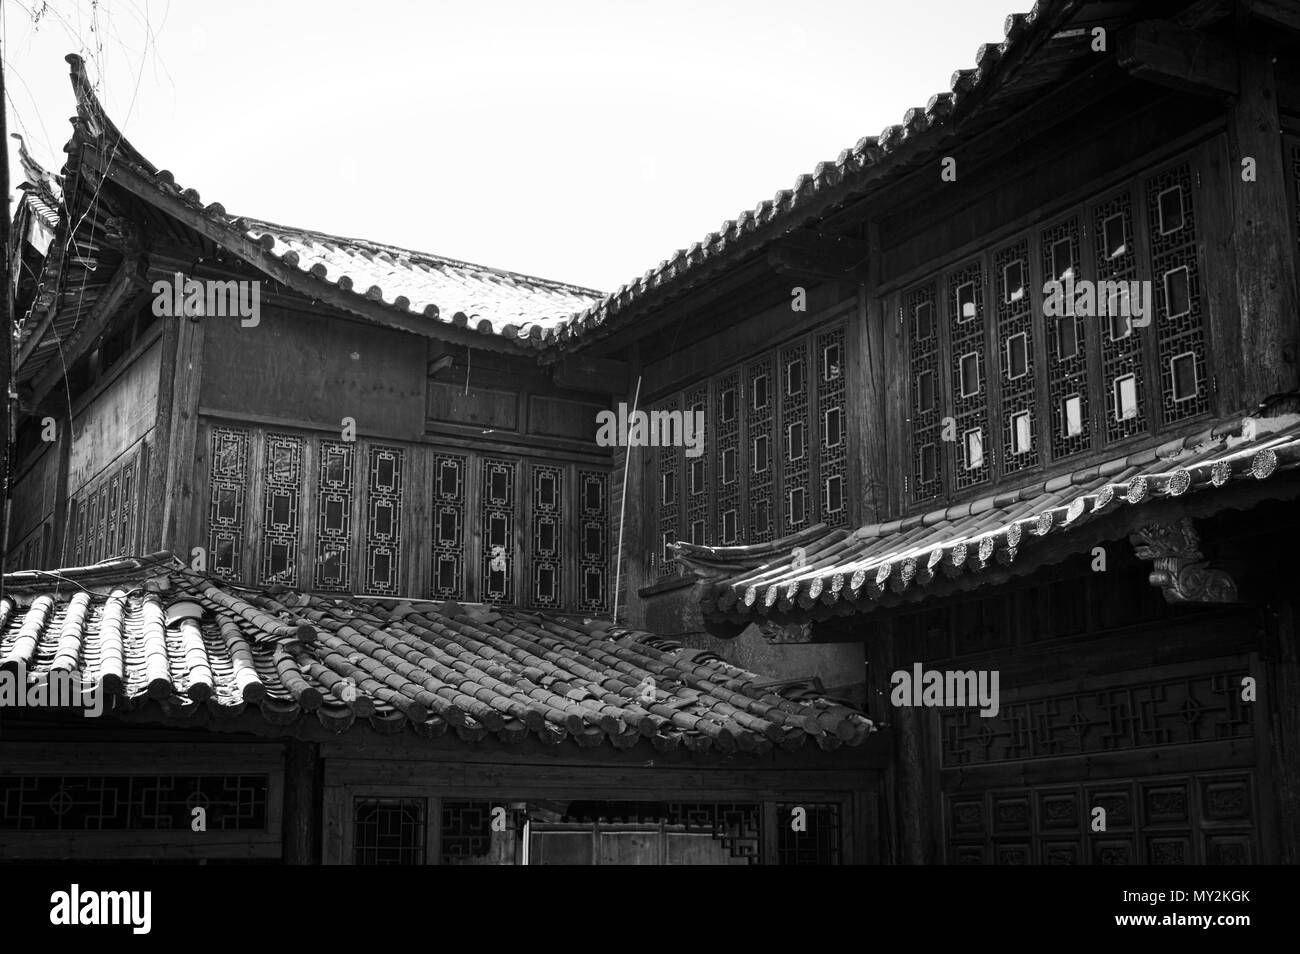 Architectural details of roofs and windows in the Old Town of Lijiang (Yunnan, China) - Stock Image